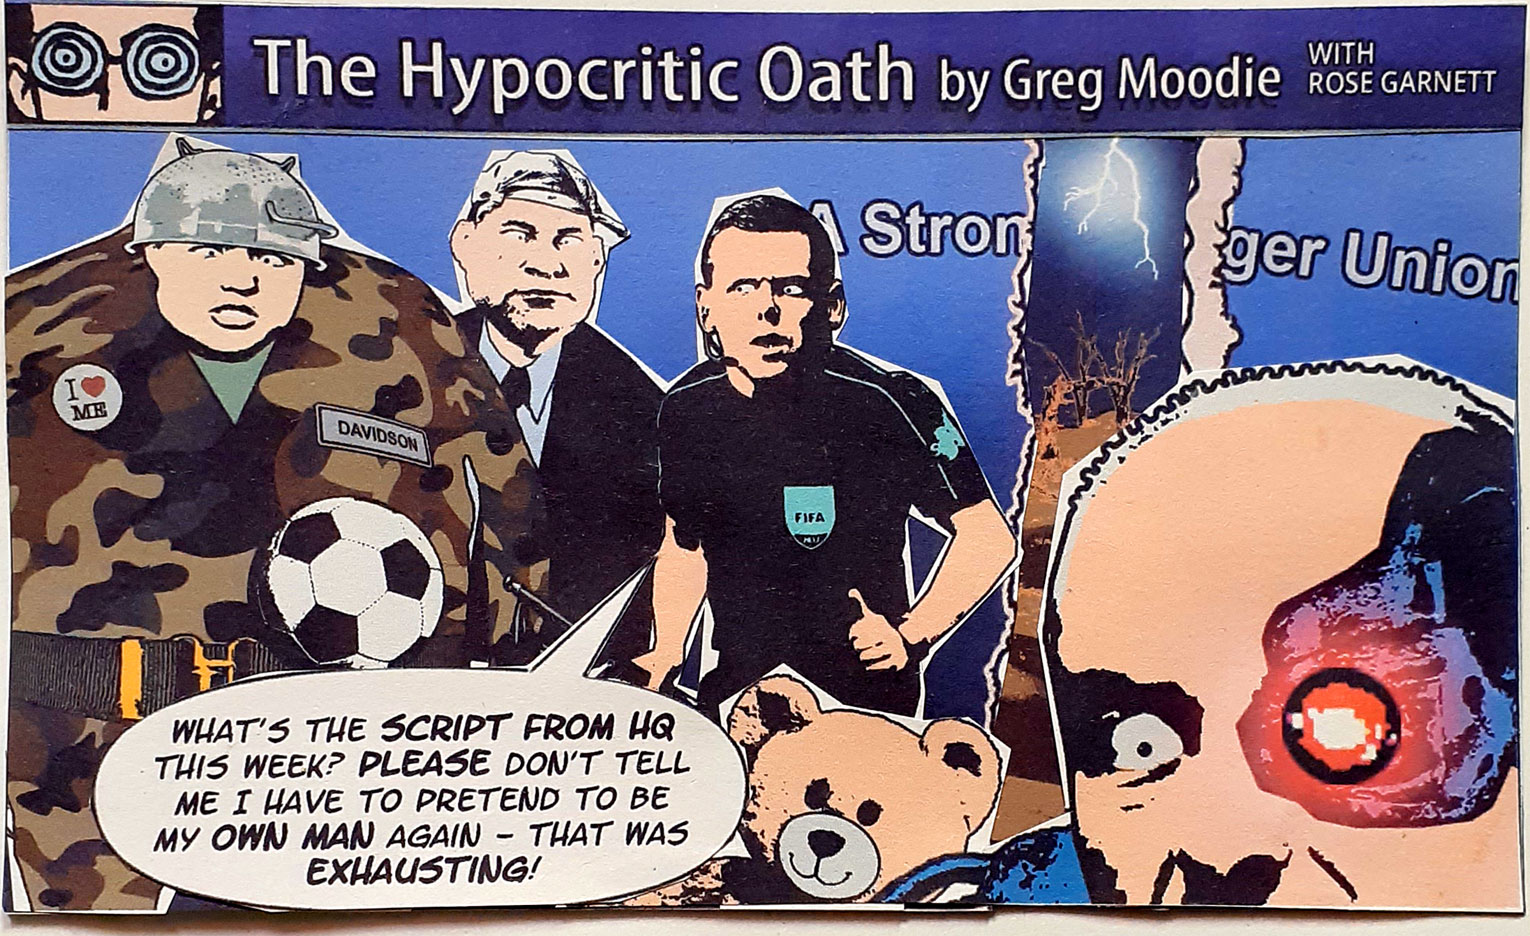 The Hypocritic Oath